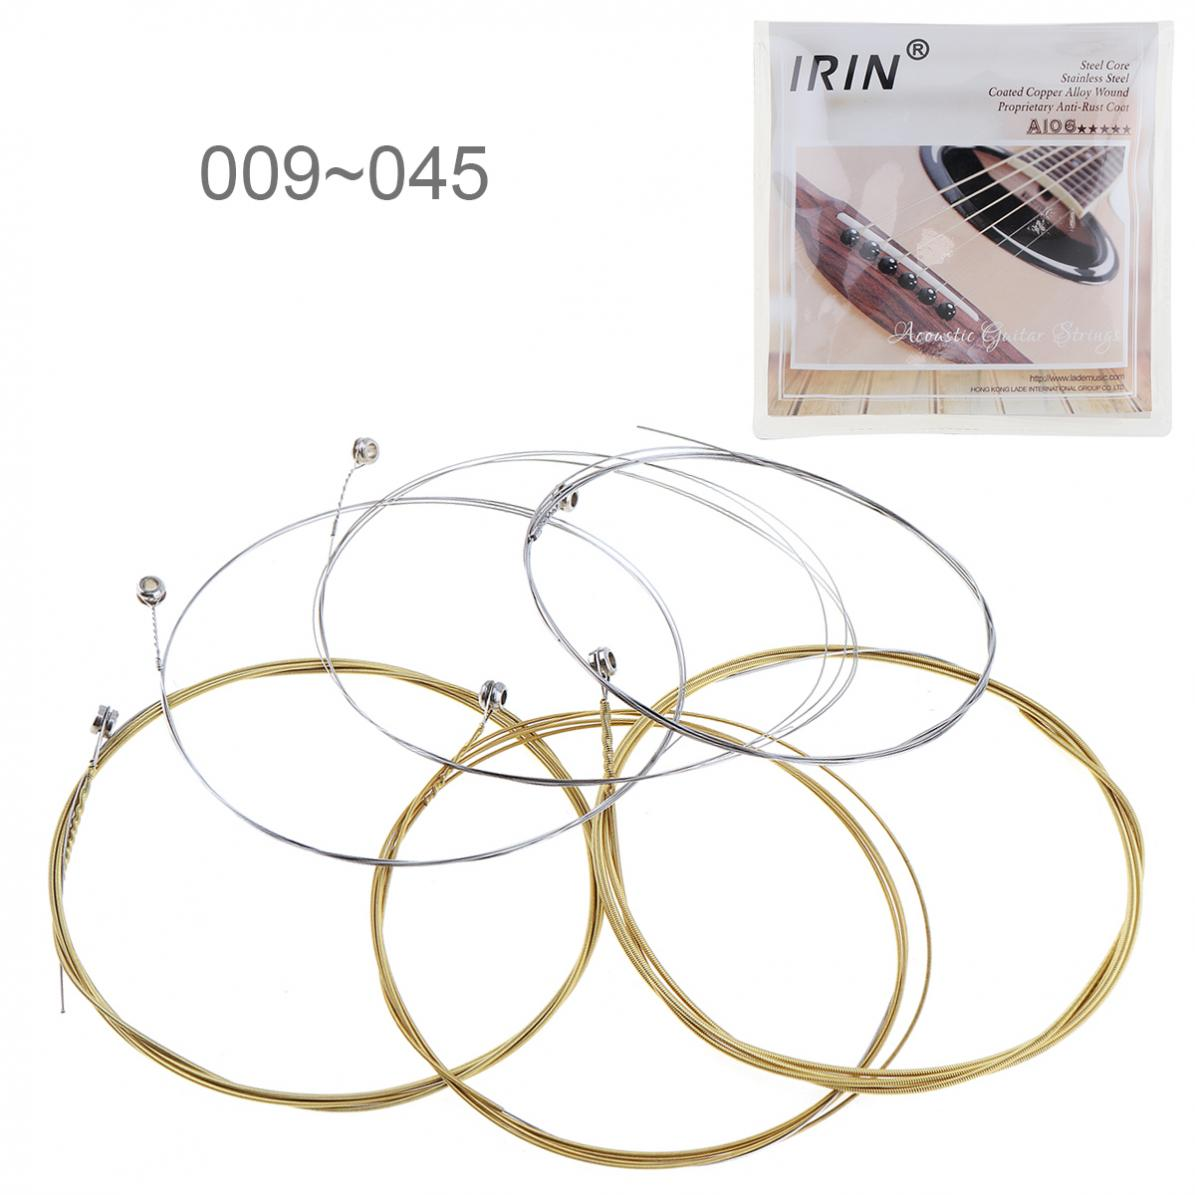 6pcs  Acoustic Flok Guitar String 009-045 Inch Steel Core Coated Copper Alloy  with Proprietary Anti-Rust Coat